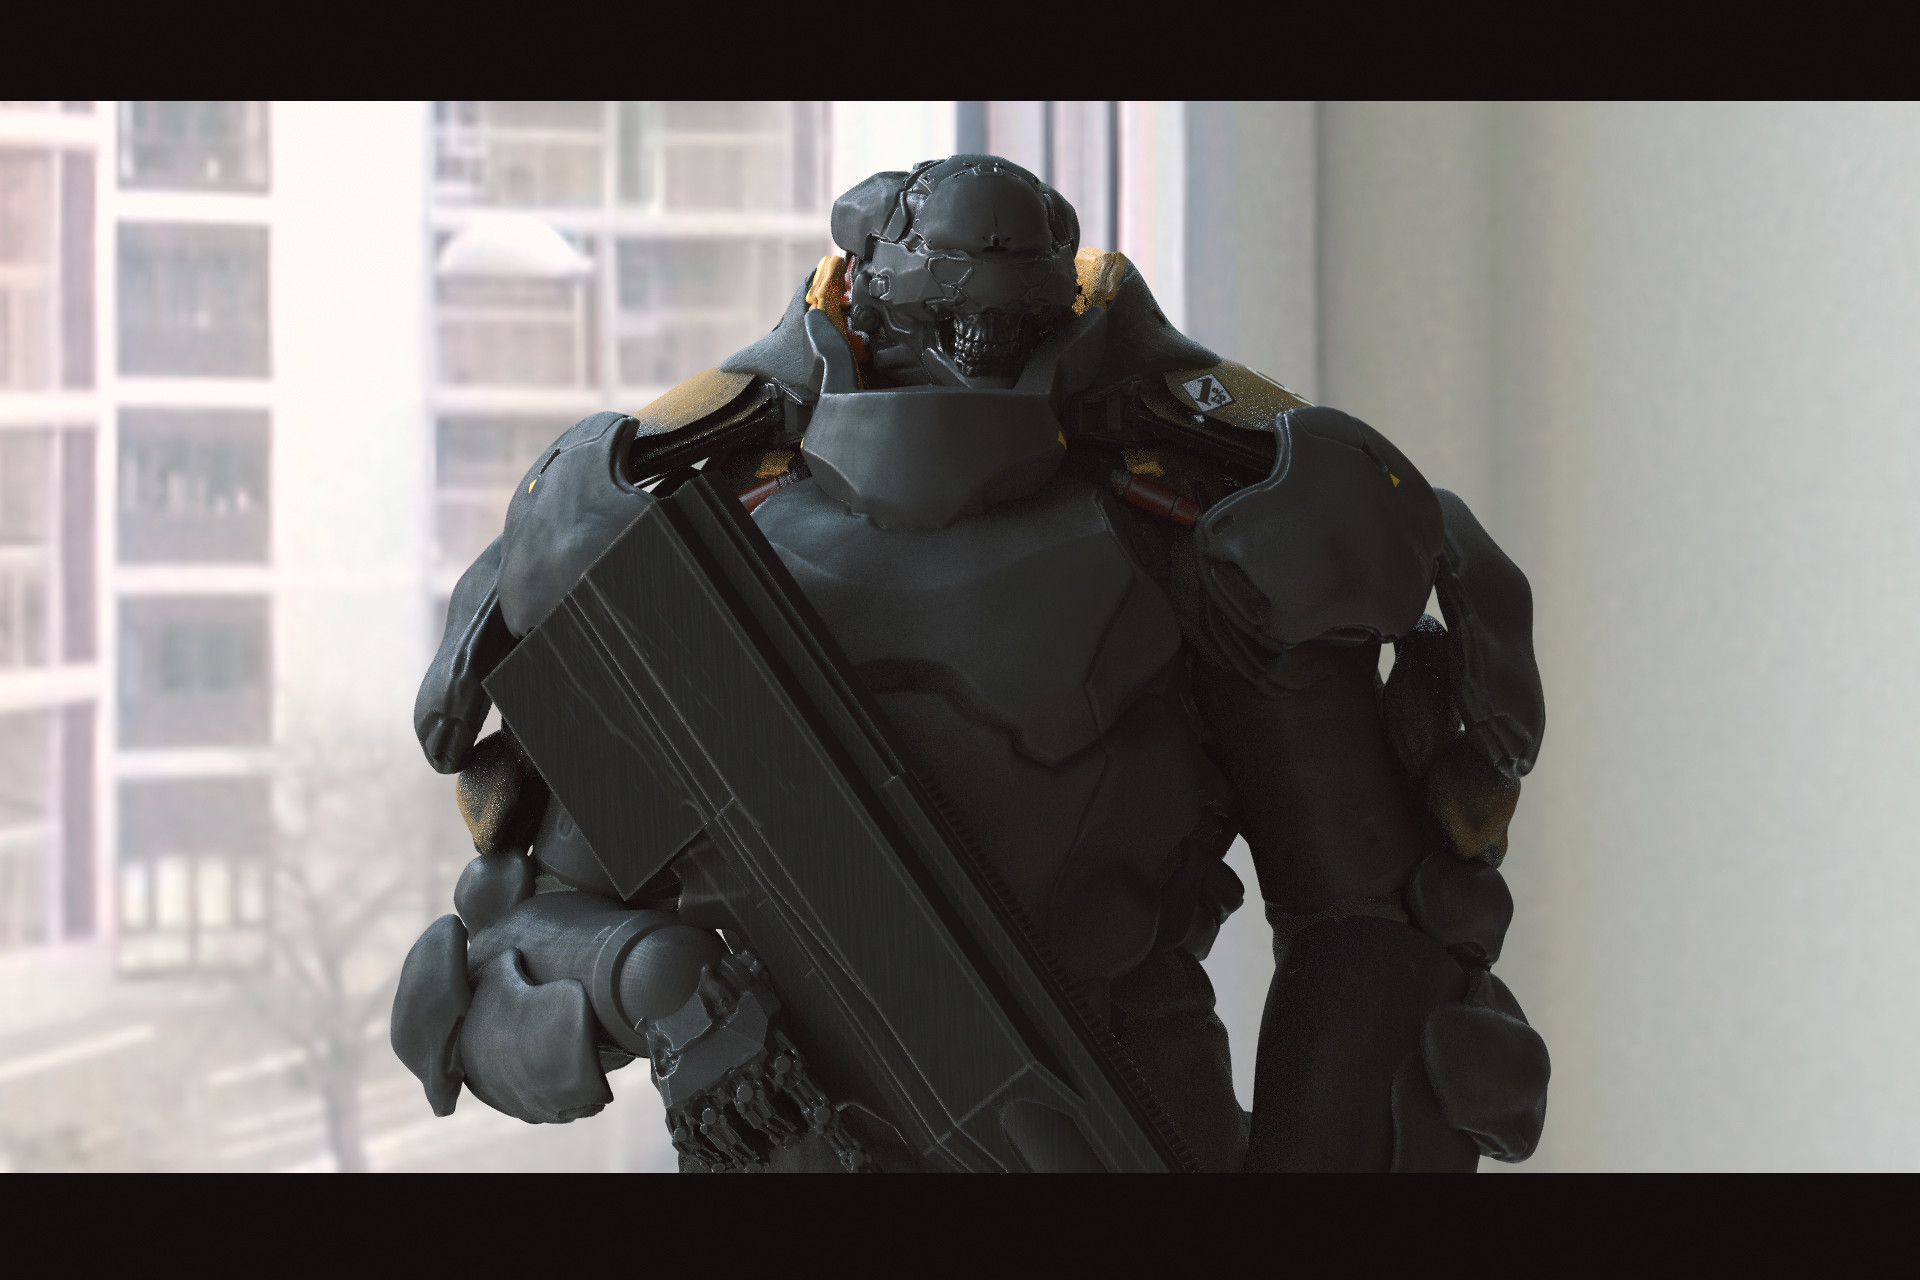 Alex figini mech suit test 01a